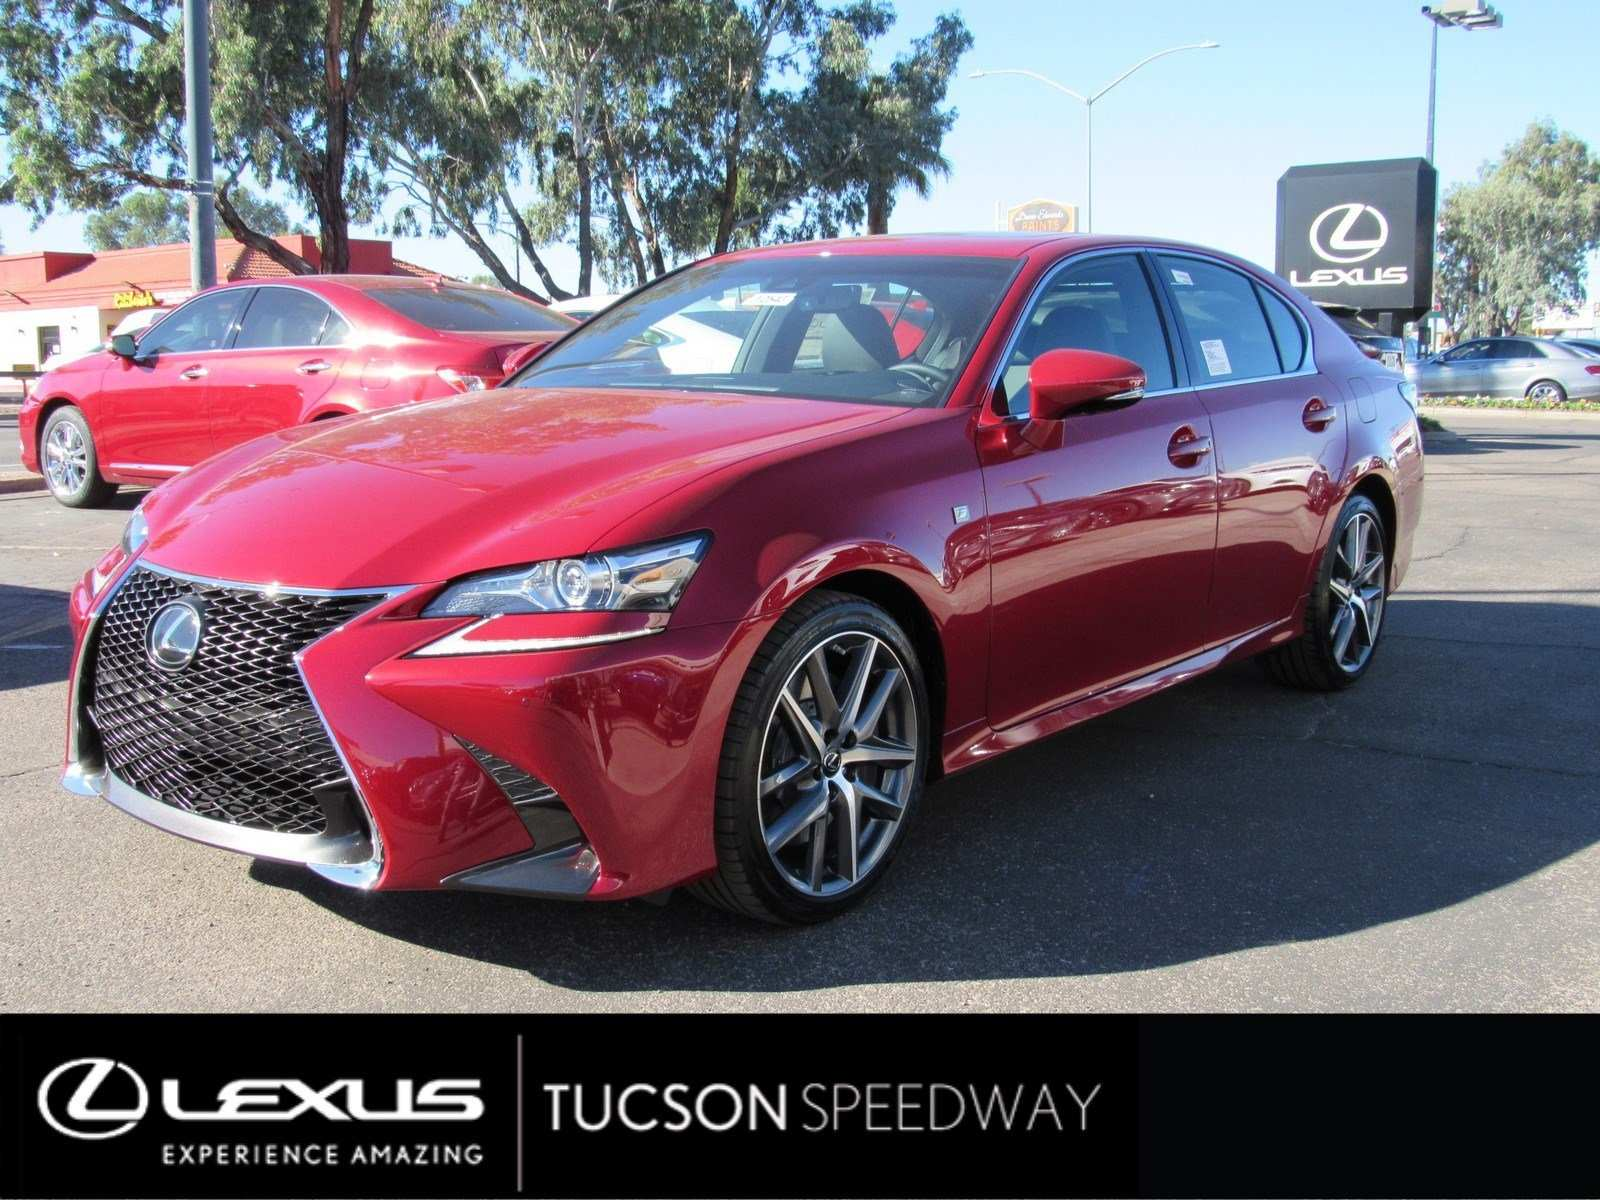 45 New 2019 Lexus Gs F Sport Performance and New Engine for 2019 Lexus Gs F Sport